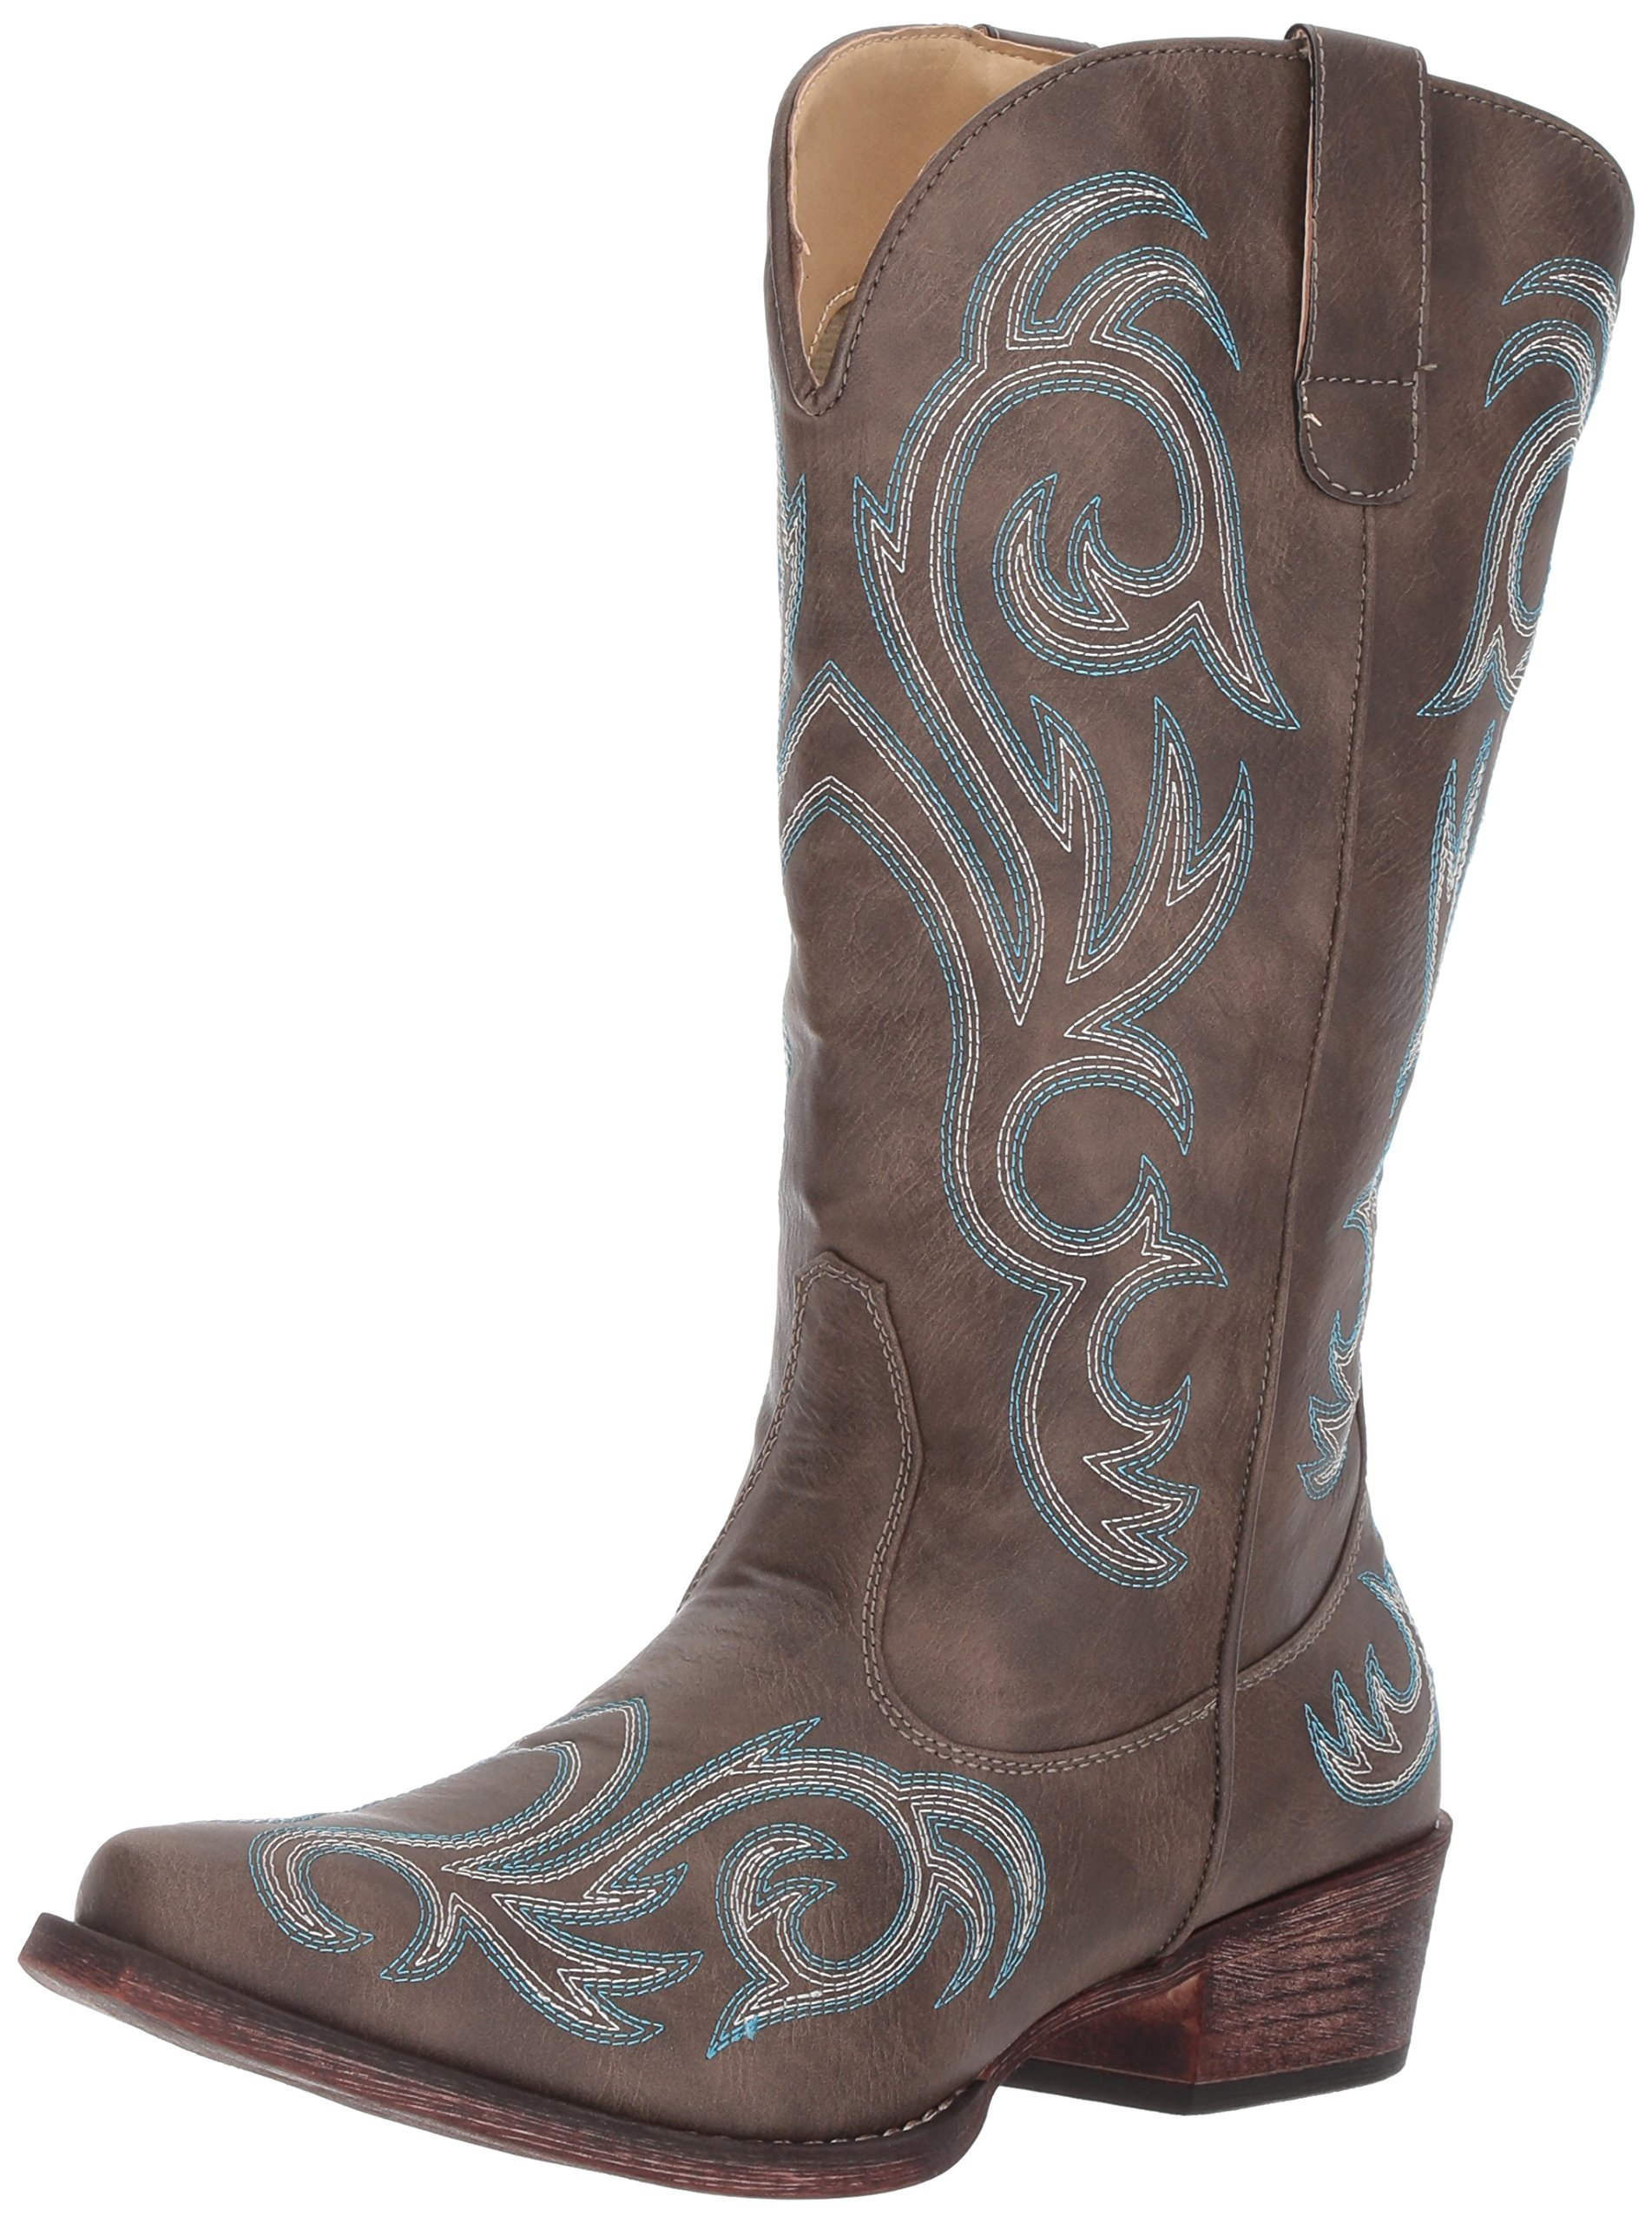 ROPER Women's Riley Western Boot, Brown, 8 D US by ROPER